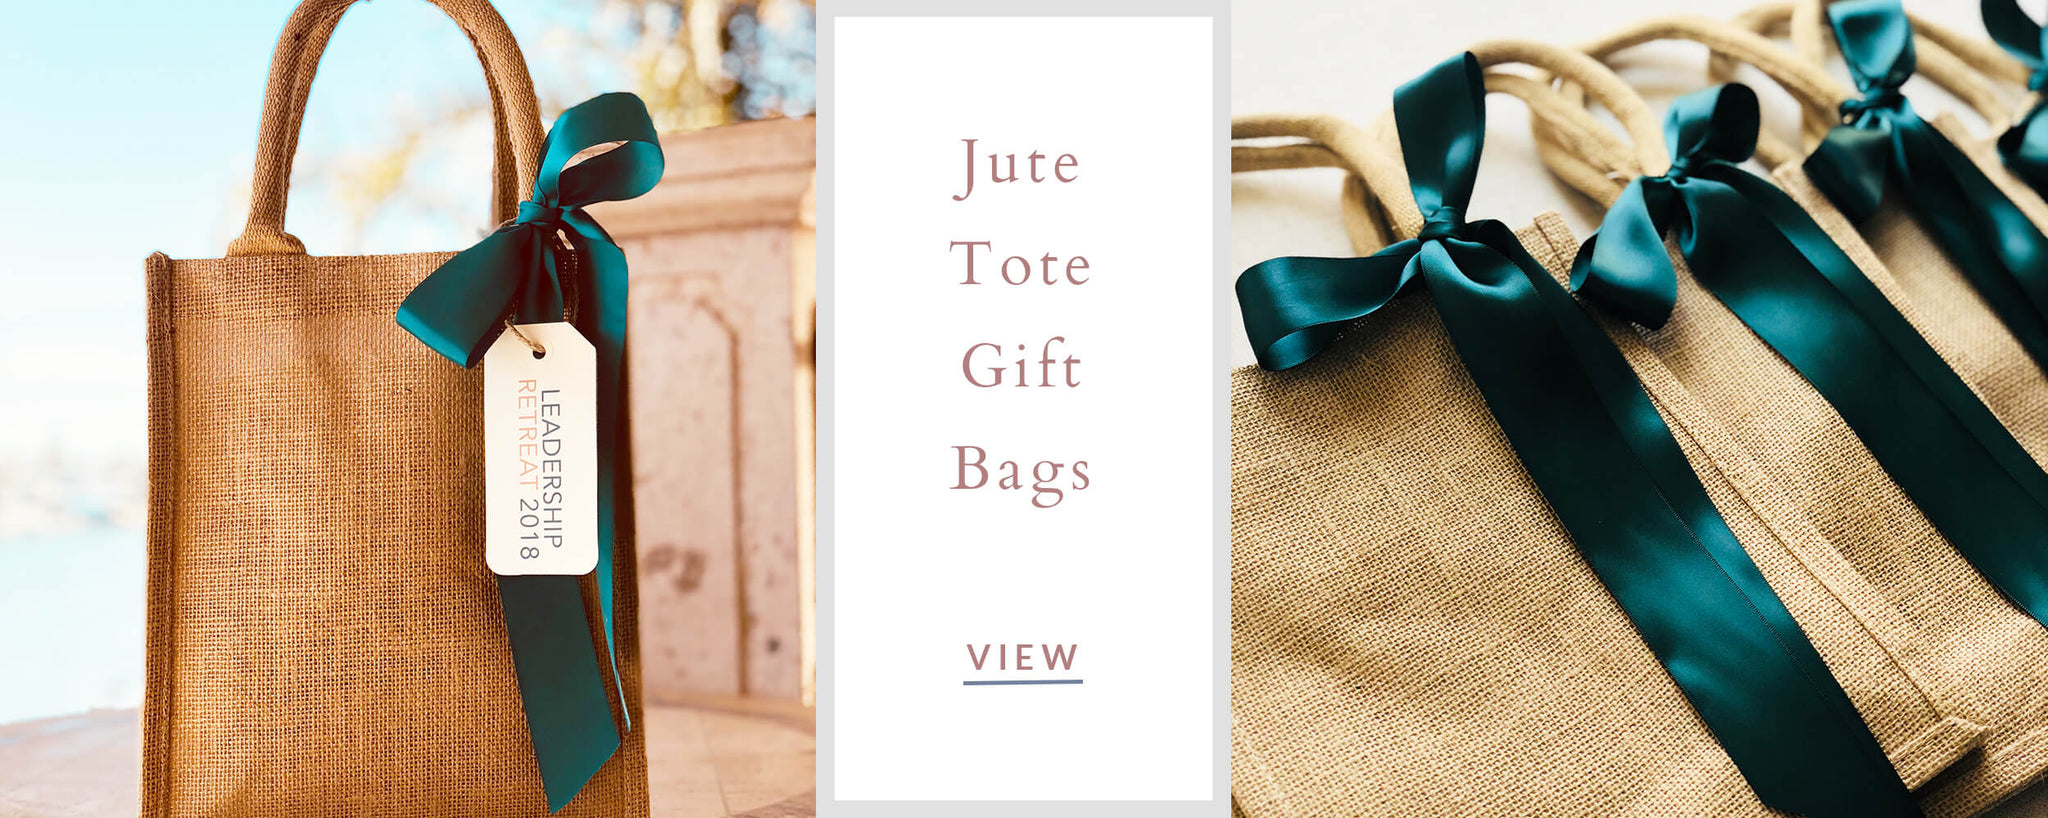 Custom Corporate Gifts - Jute Tote Gift Bag